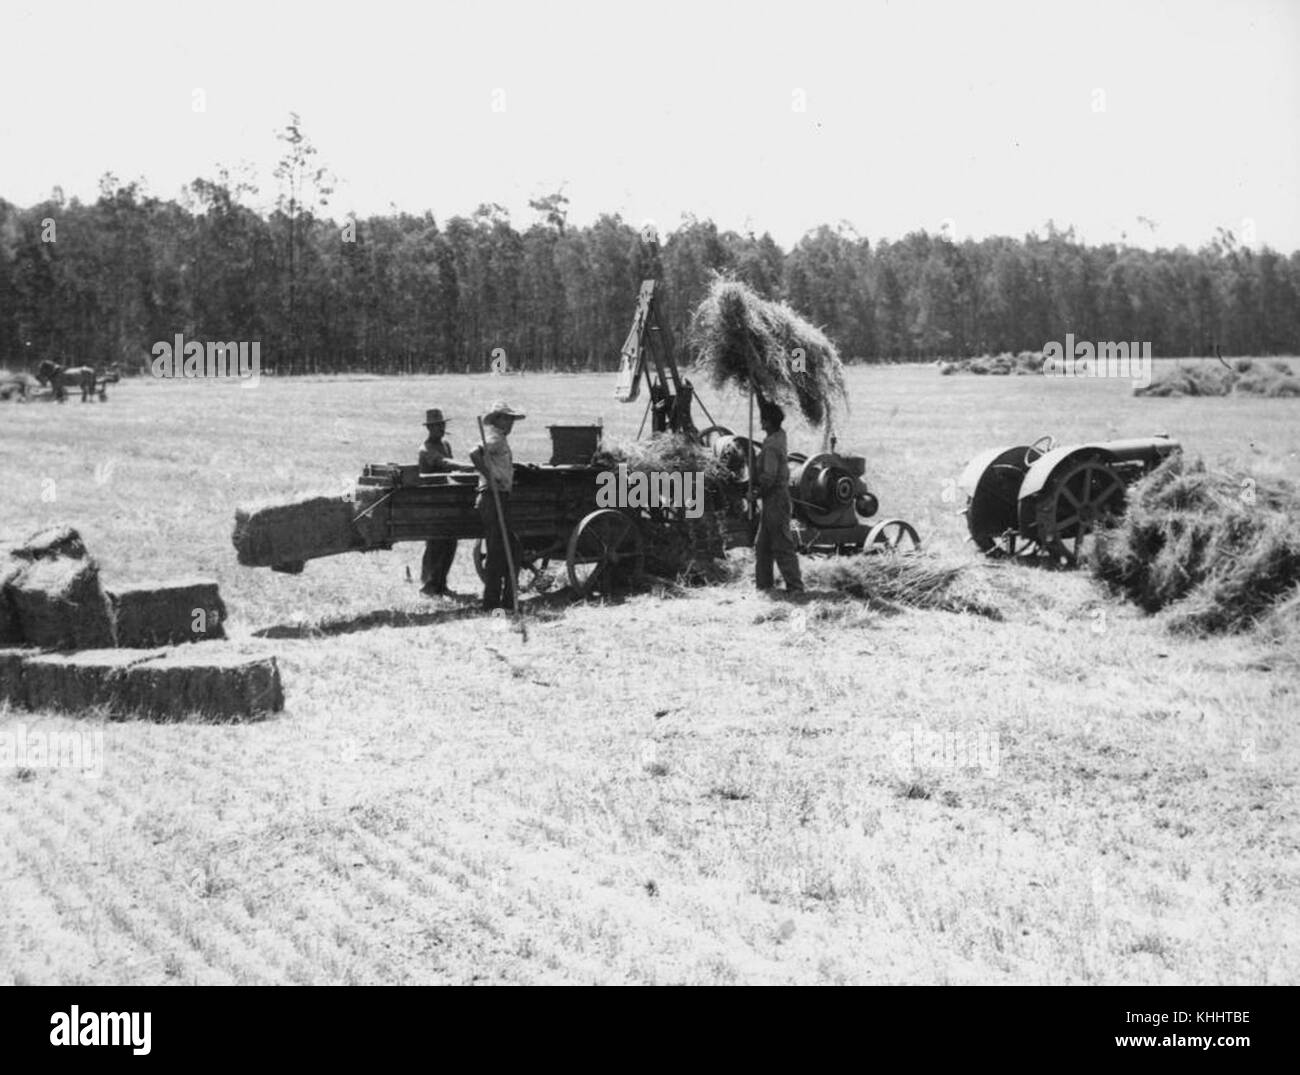 2 204084 Making hay on the farm, 1930s - Stock Image